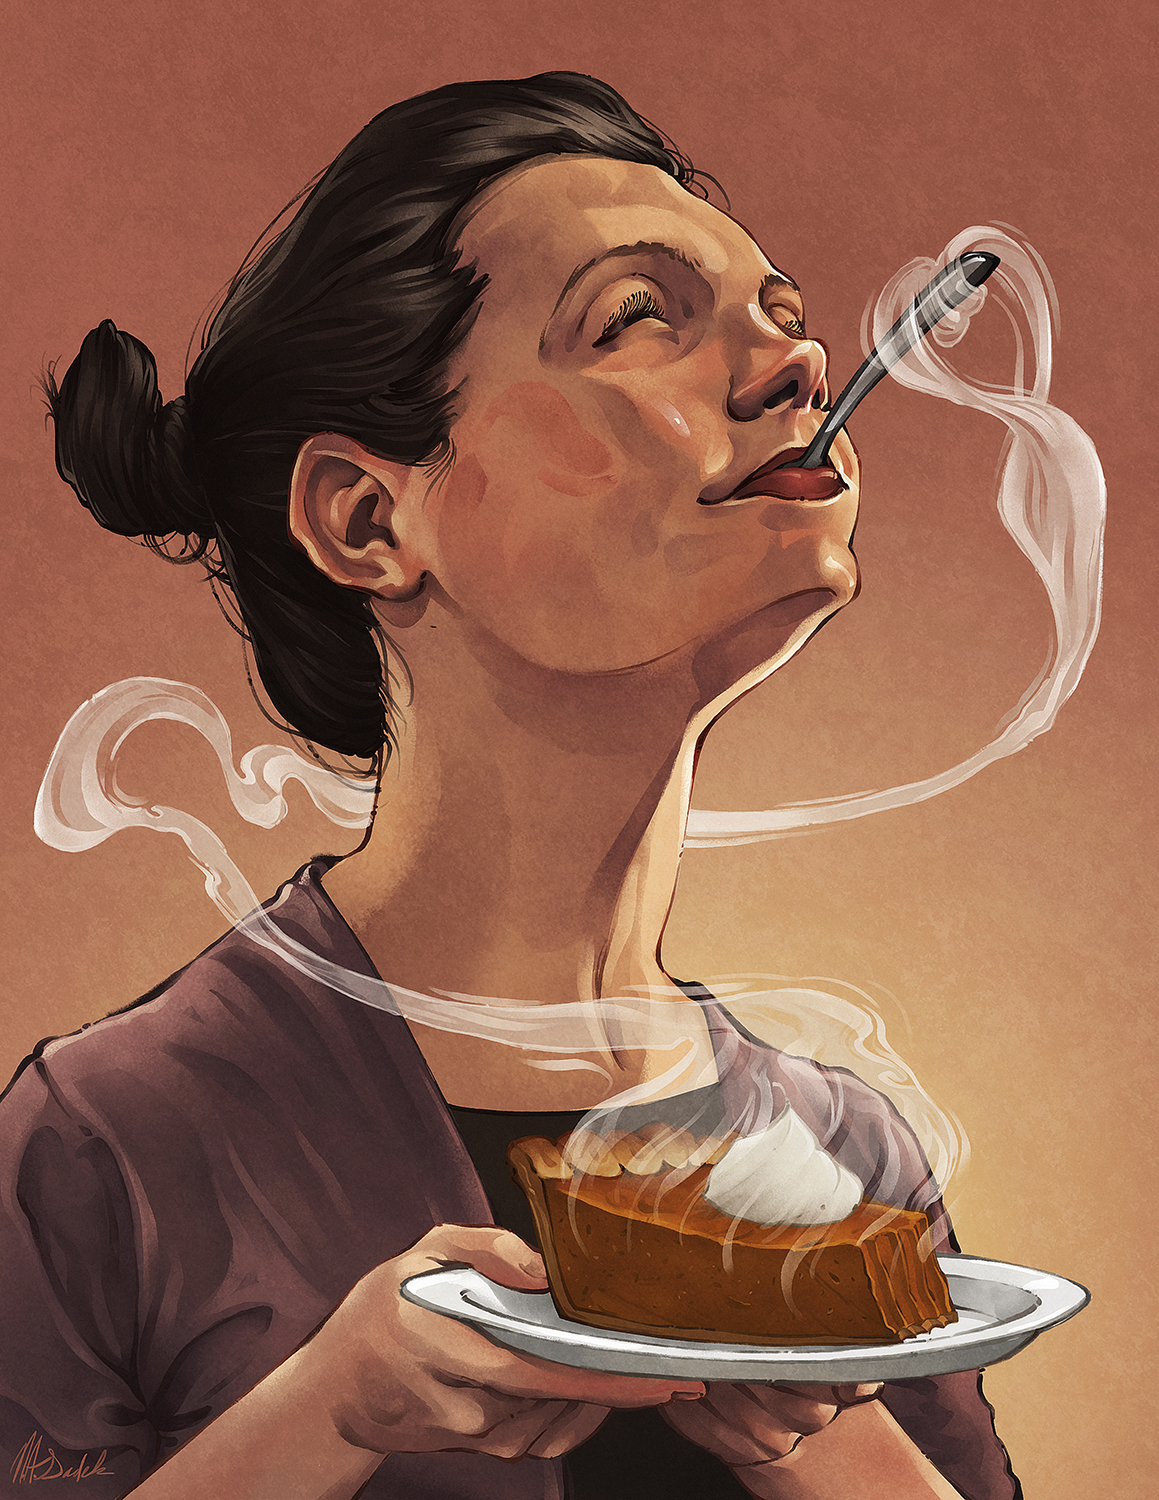 Hedonic Hunger - Illustration by Nick Sadek